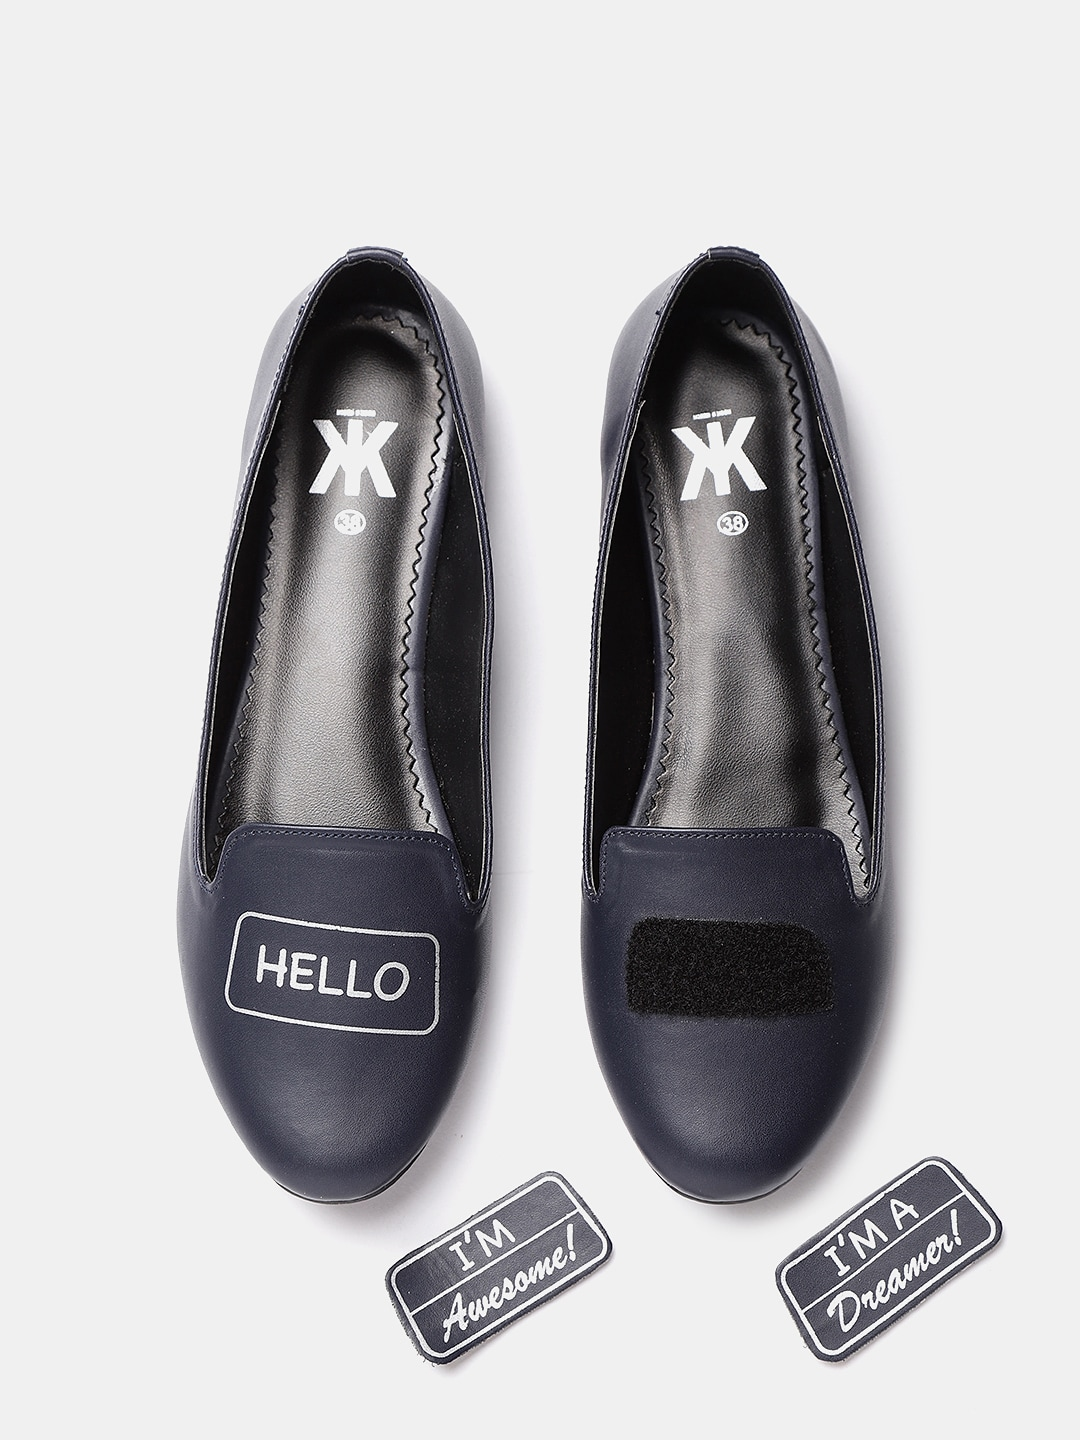 a82e8d485 Navy Blue Loafers - Buy Navy Blue Loafers online in India